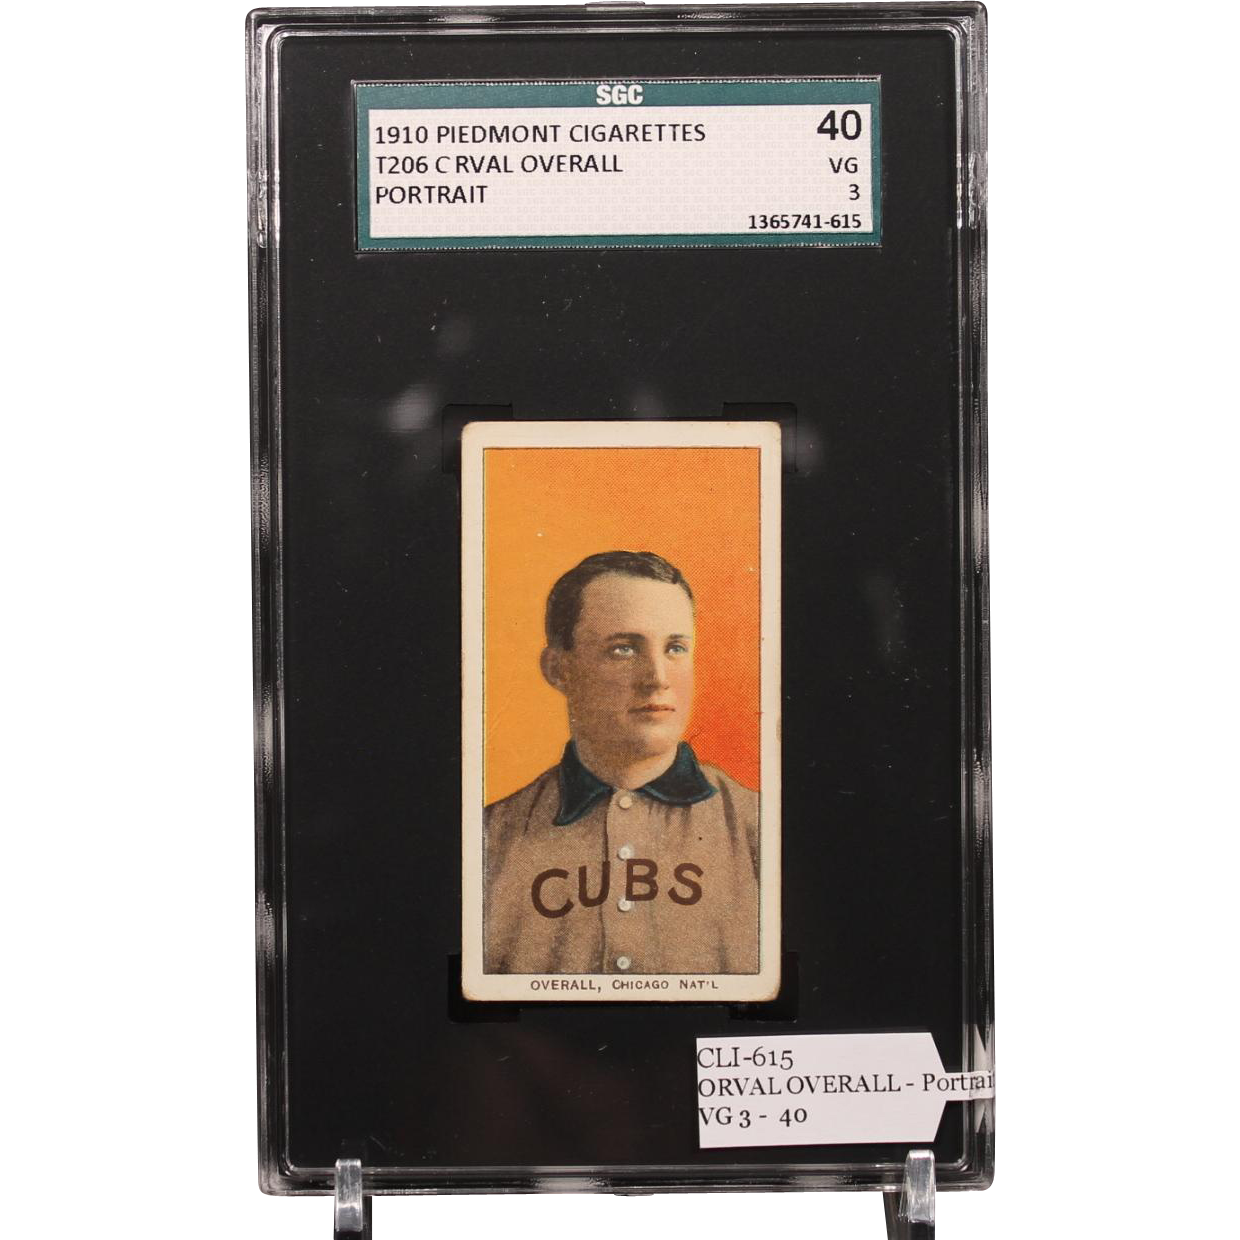 T206 ORVAL OVERALL - Portrait SGC grade 40 VG 3